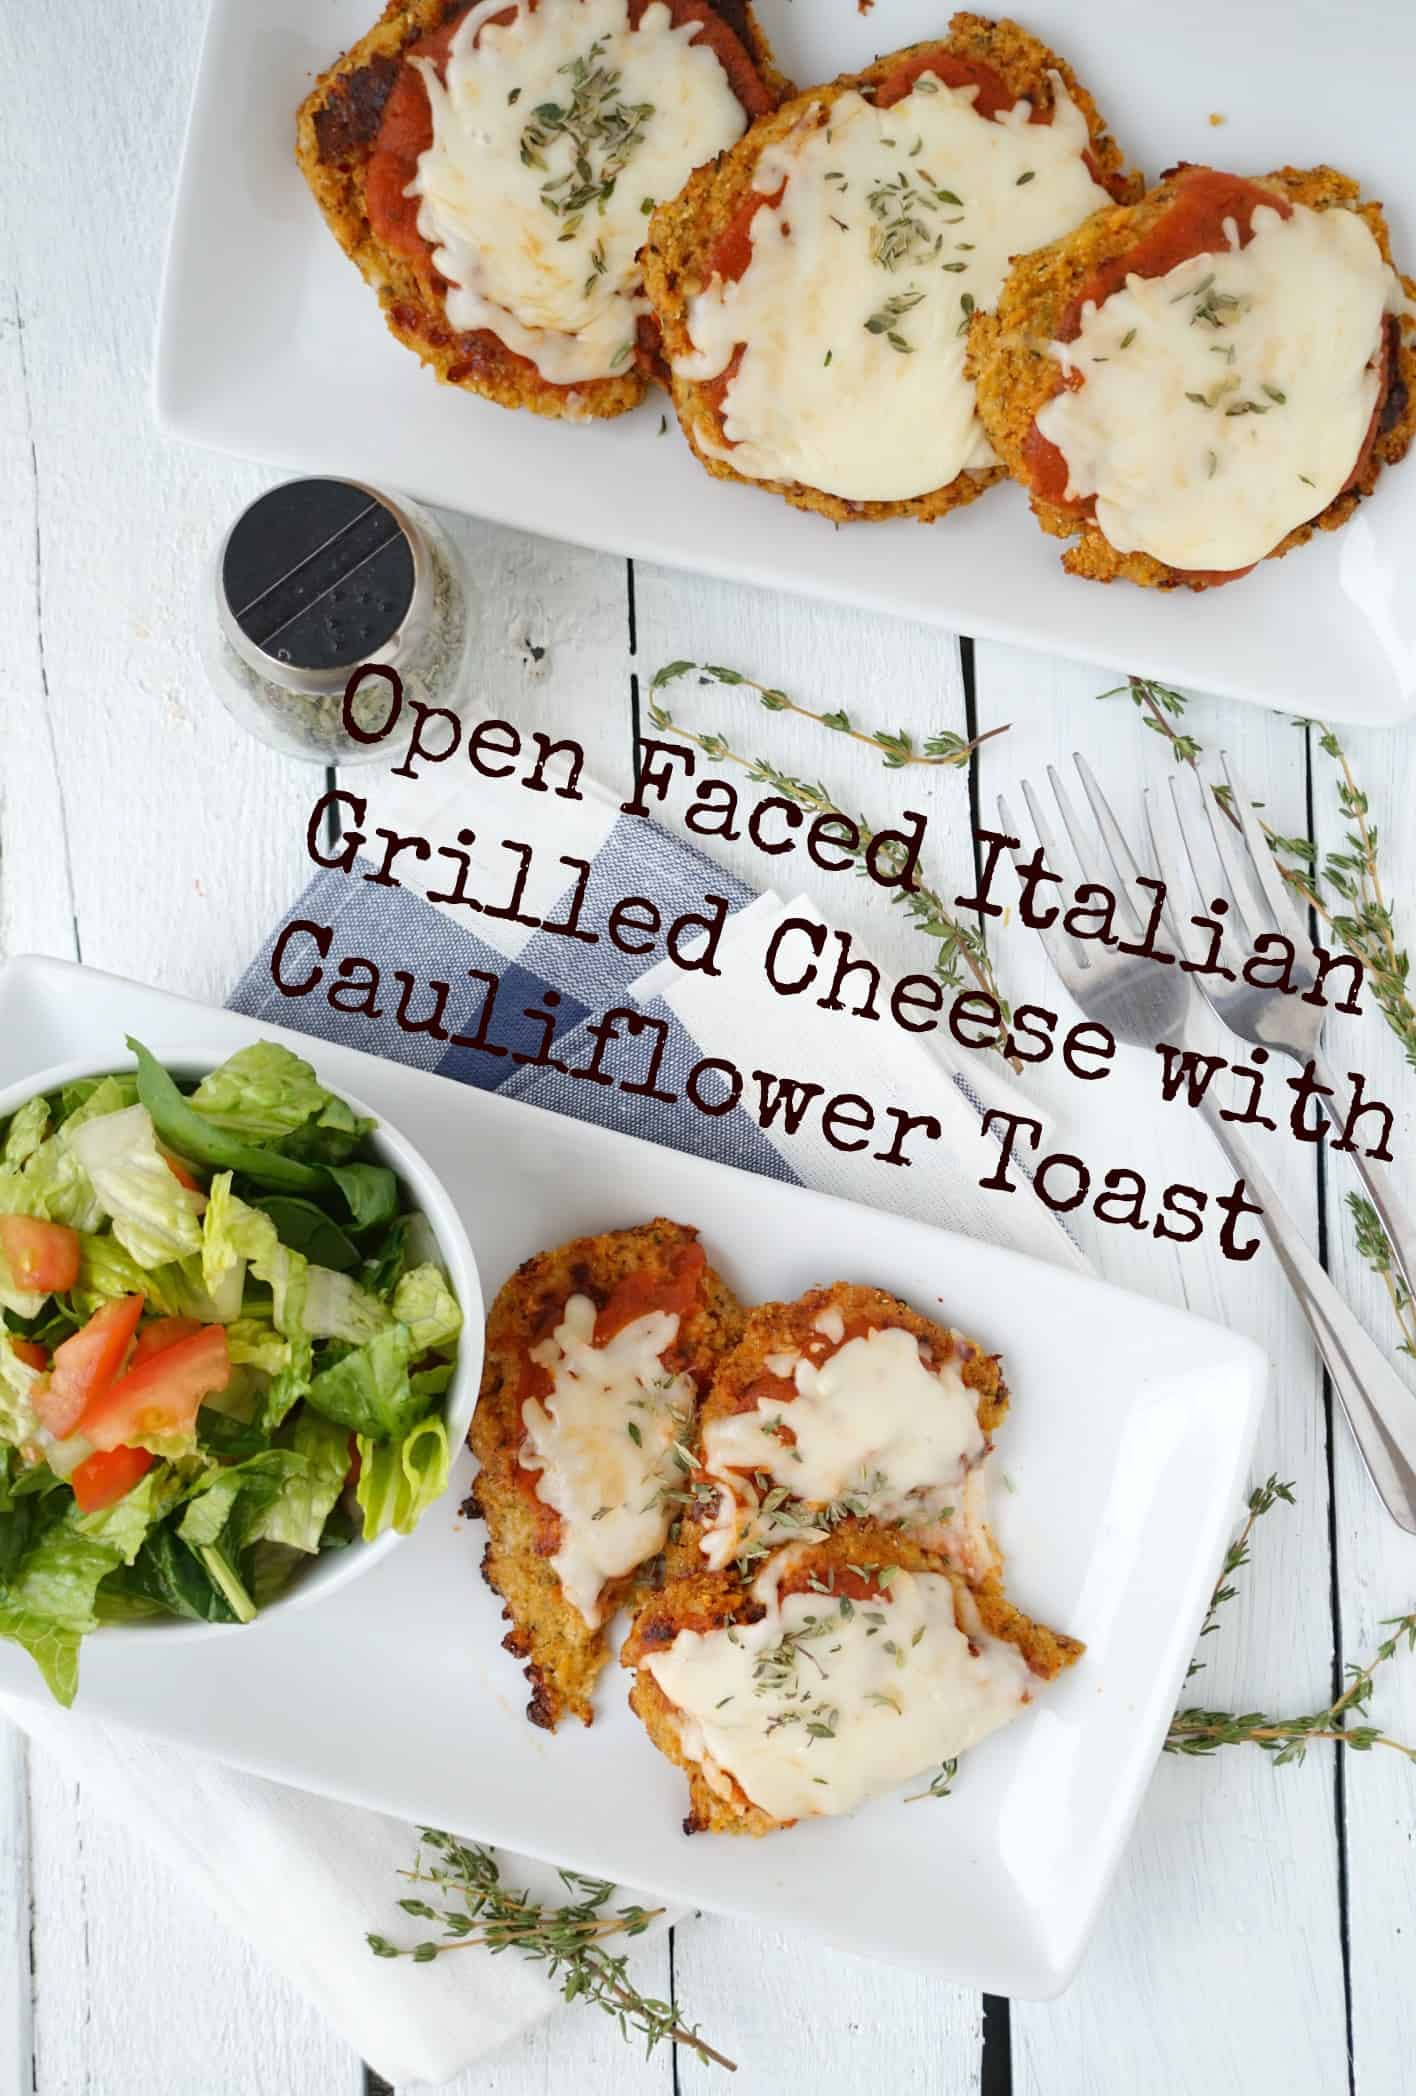 Open Faced Italian Grilled Cheese with Cauliflower Toast - Shaws Simple Swaps